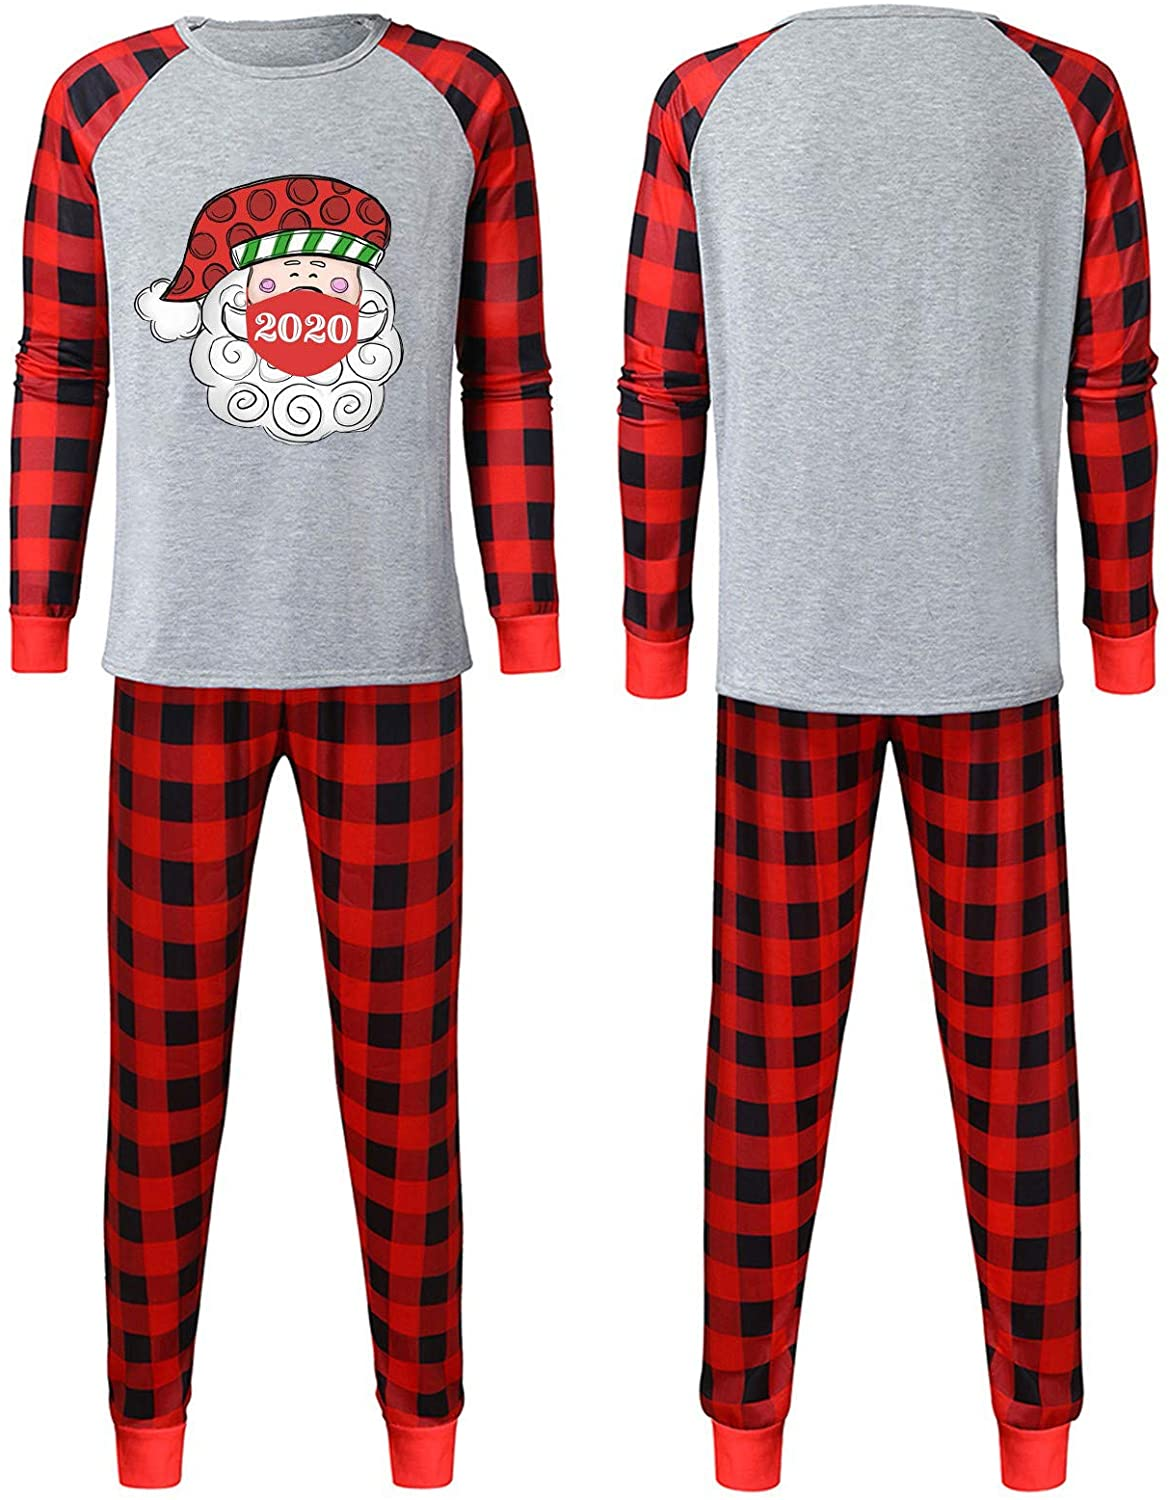 Clothing Outfits Suits 2020 Christmas Printed Pajamas for Family Santa Claus Loungewear Sleepwear Set